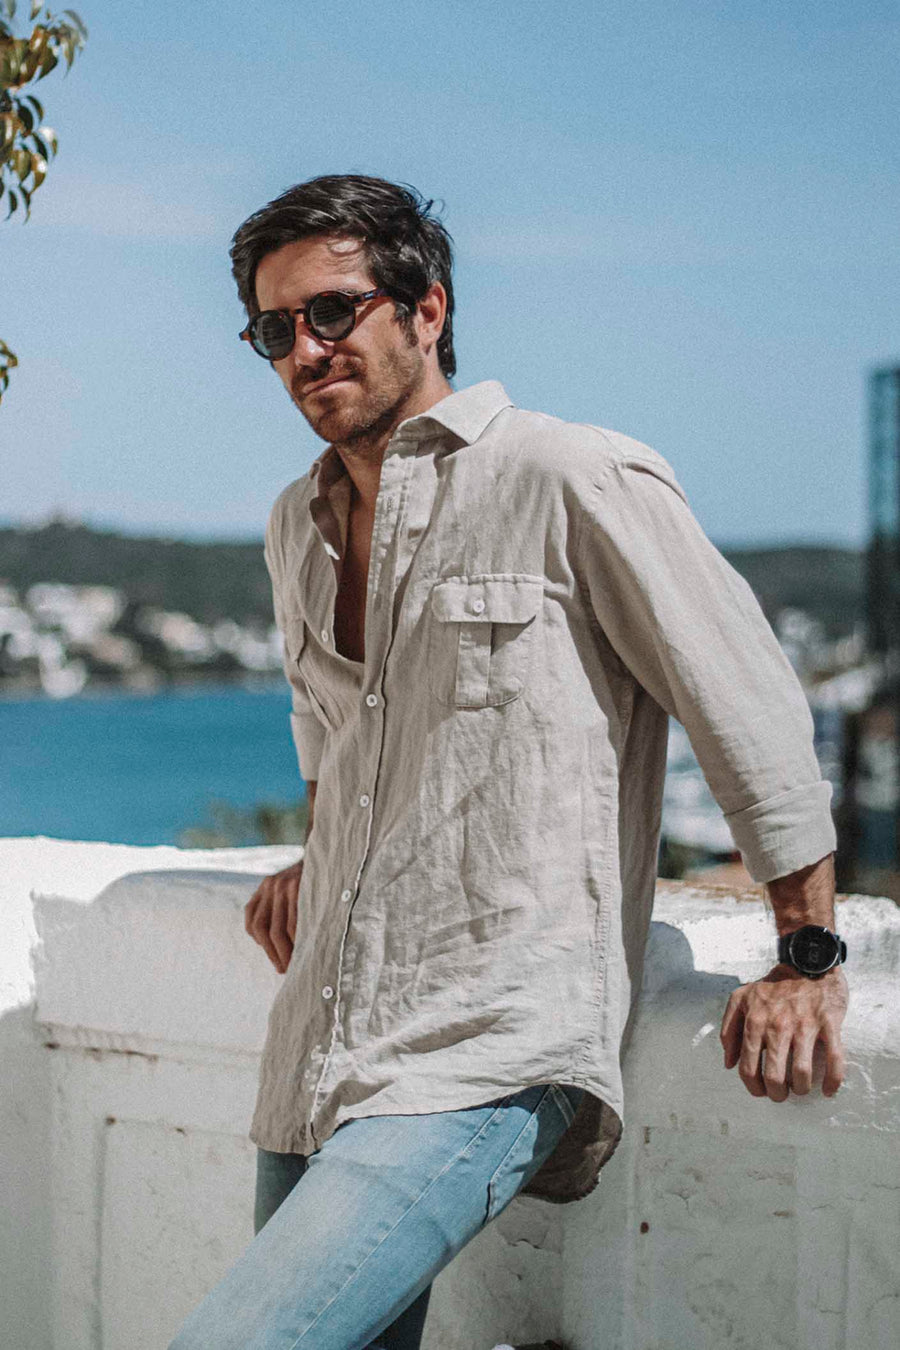 Explorer Sand Ivory Linen Shirt Worn Out